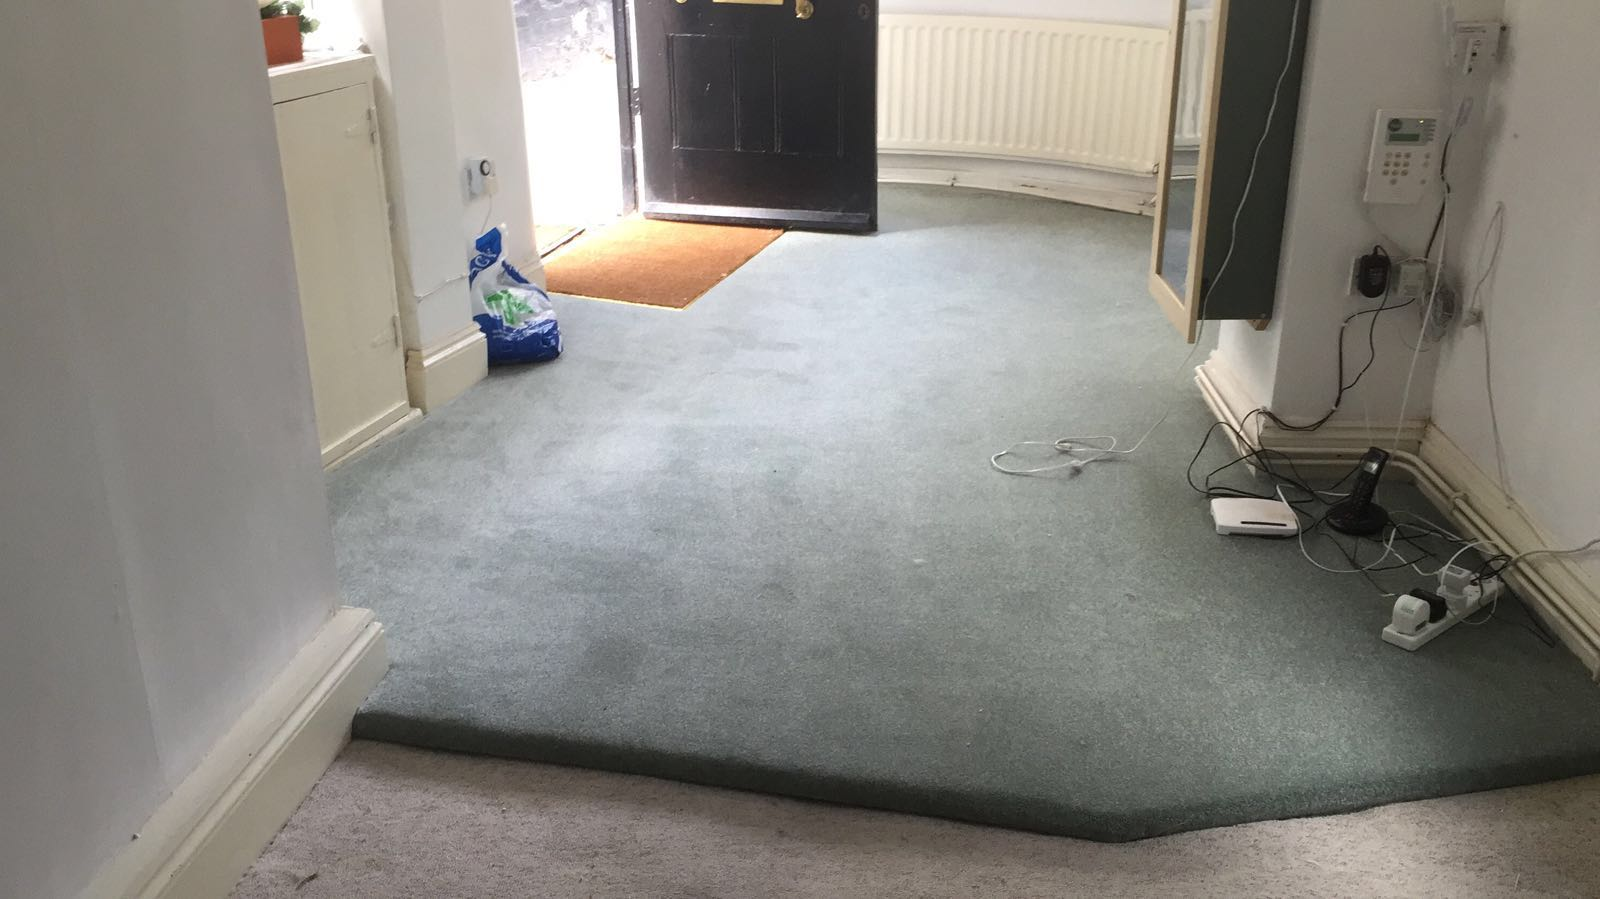 New Carpet....It's lovely!